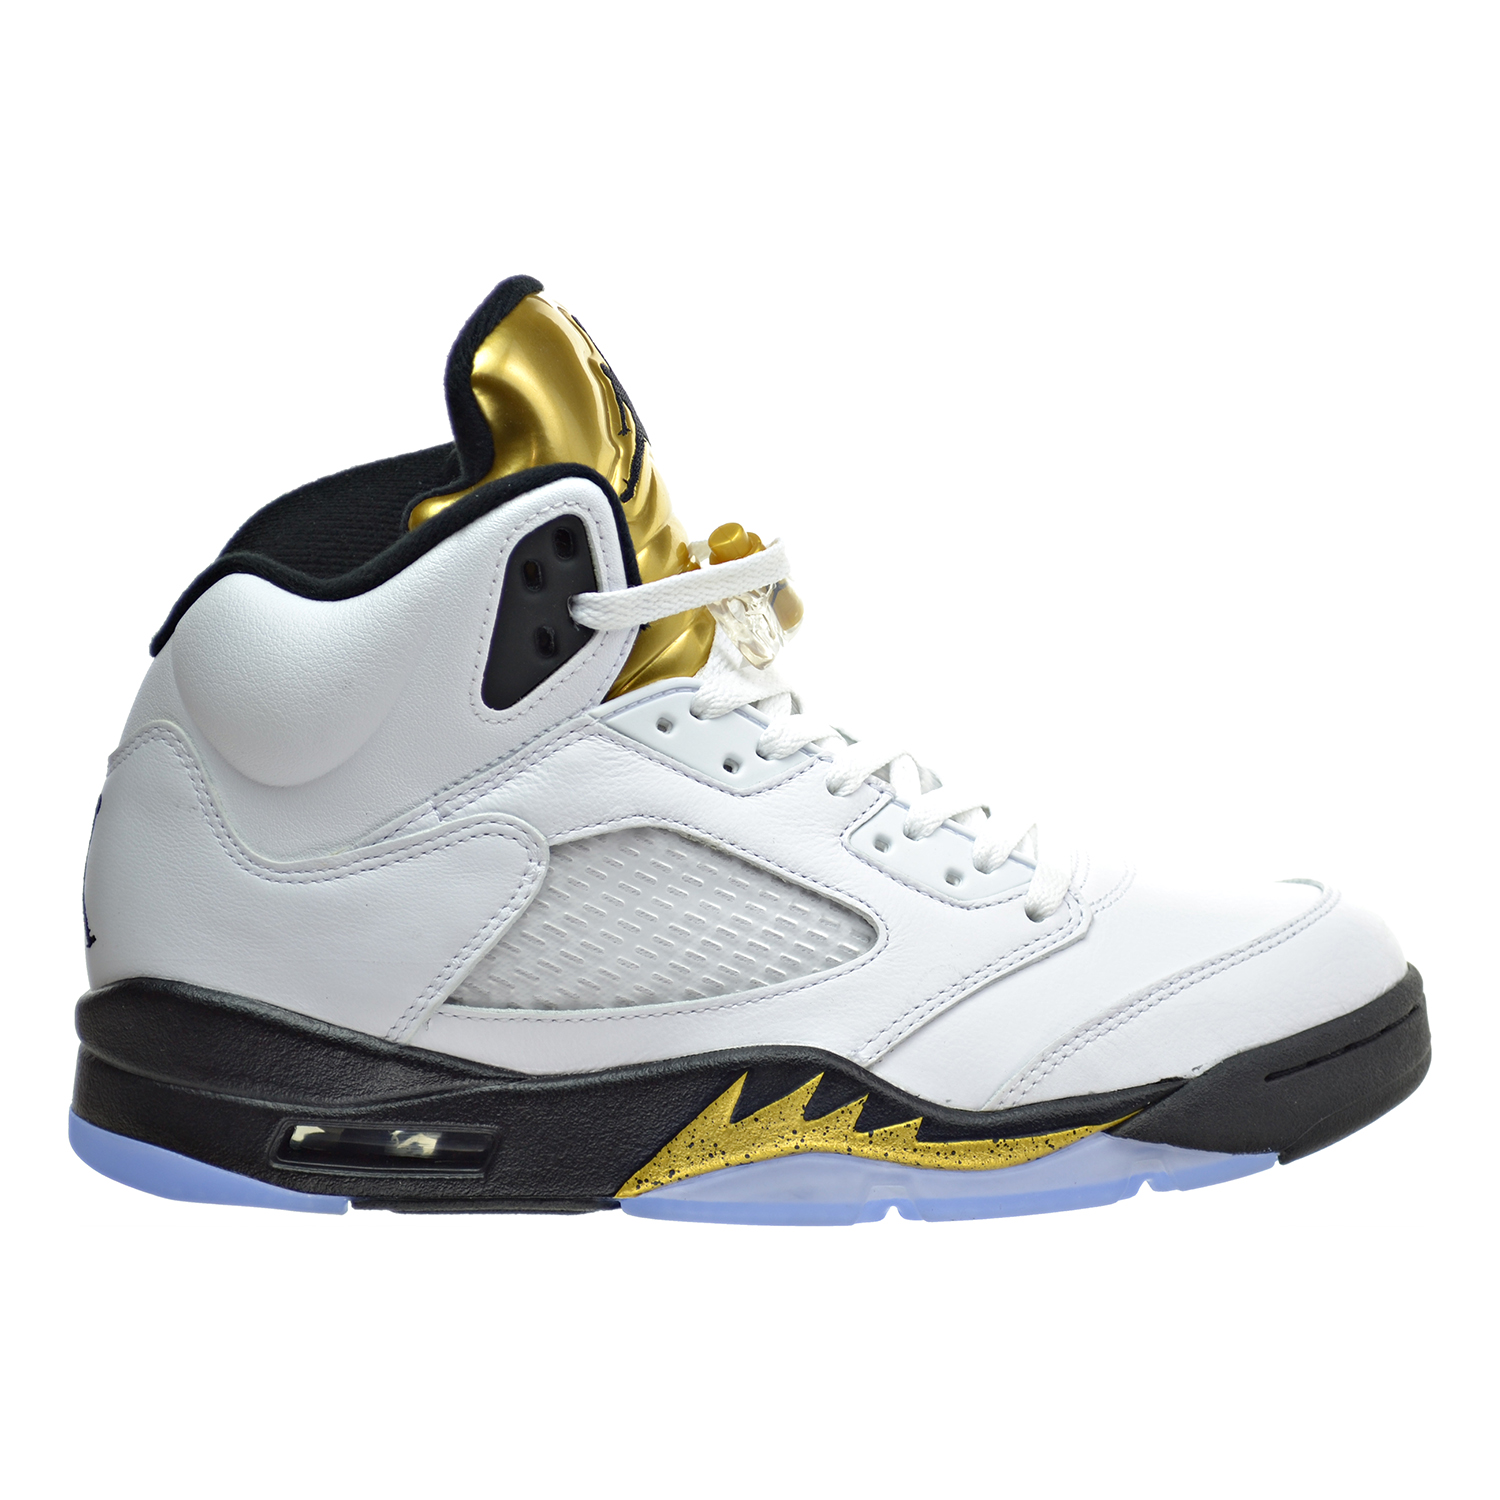 Jordan Retro Collection (60) Pay homage to the G.O.A.T. with classic shoes, clothing and gear from the Jordan Retro collection. Choose from a variety of styles in both new and original colorways that match your personal style. Sort By: Air Jordan 5 Retro. Men's Shoe.